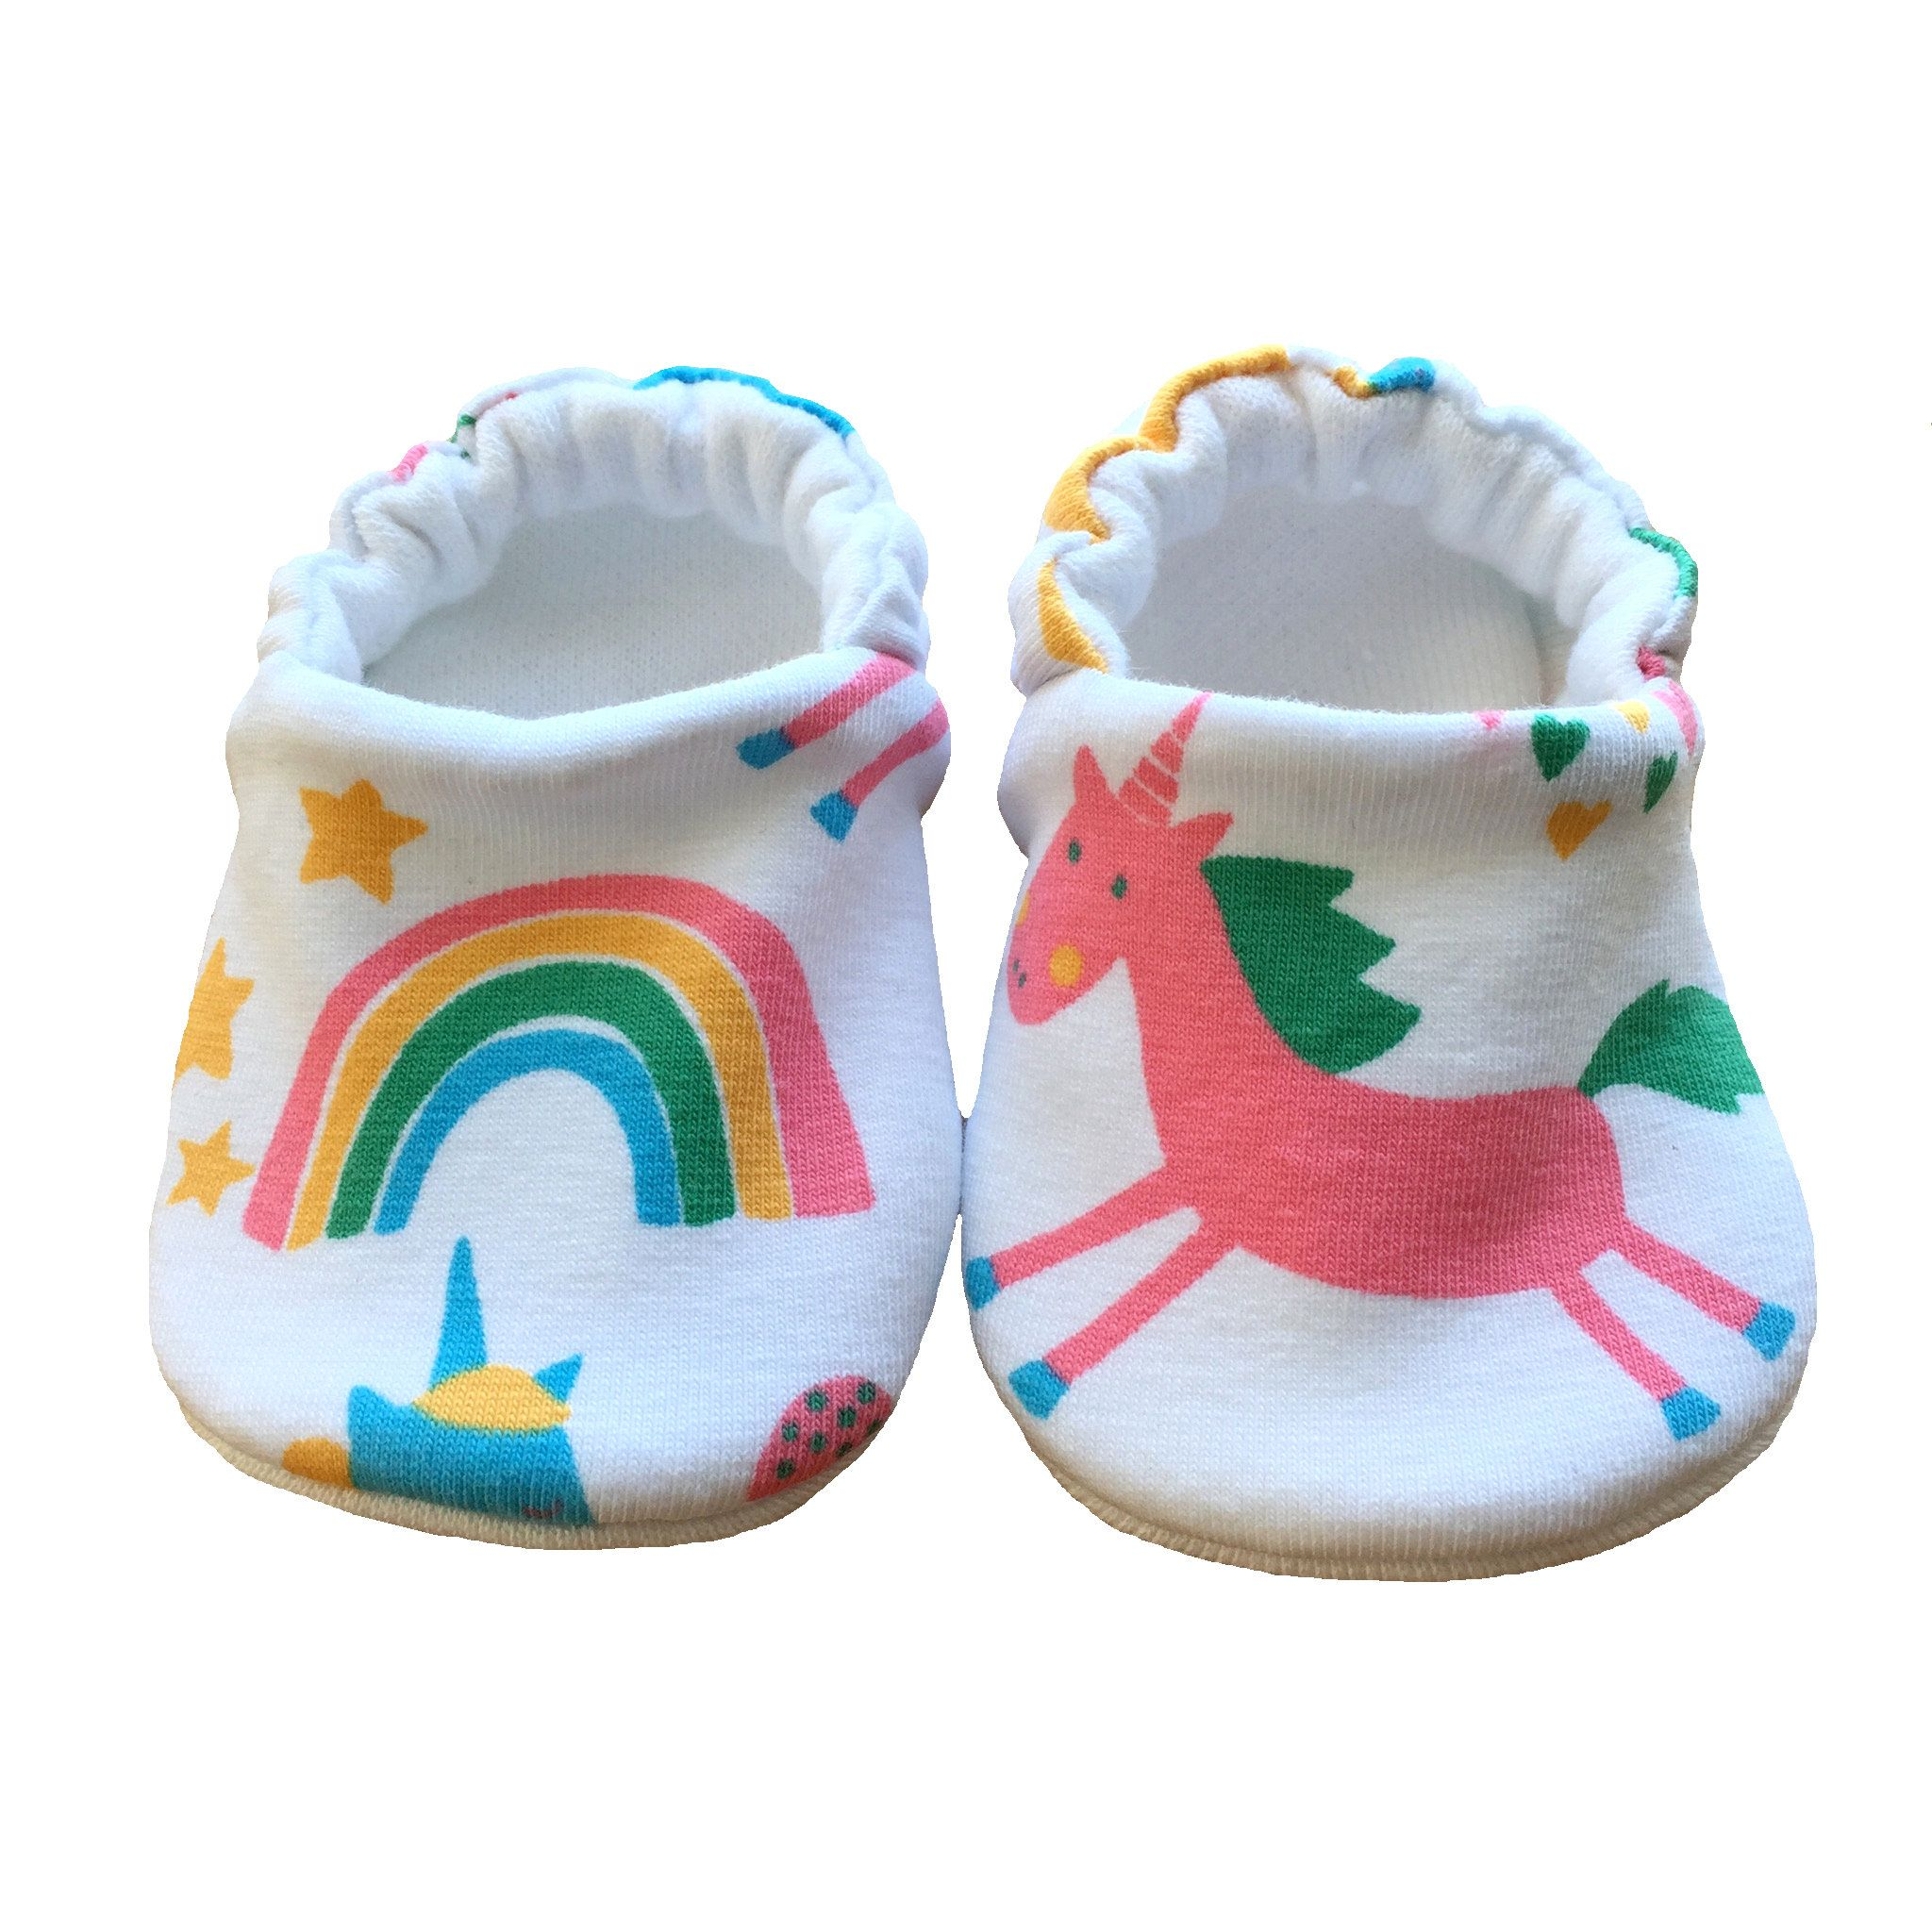 Unicorn Shoes Rainbow Baby Moccasins Baby Slippers Newborn Shoes Crib Shoes Soft Sole Shoes Pram Shoes Slipon Shoes Baby Moccasins Newborn Shoes Baby Slippers